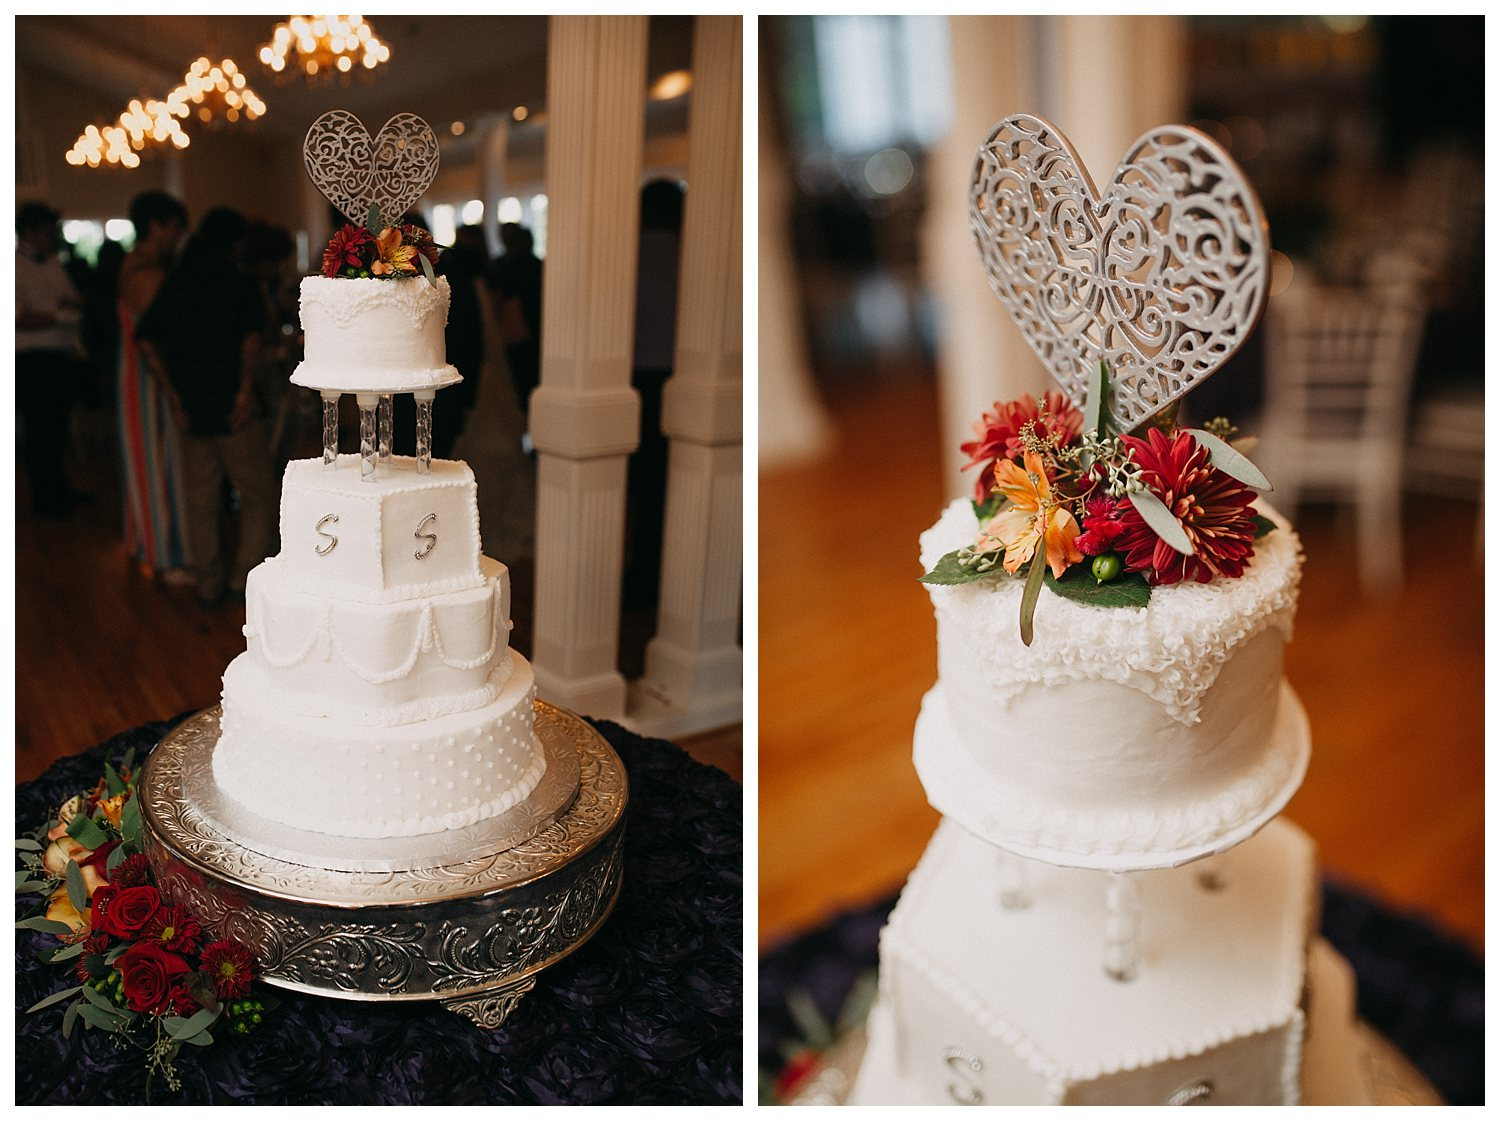 Kelsey_Diane_Photography_Hawthorne_House_Parkville_Kansas_City_Wedding_Veronica_Pat_0064.jpg